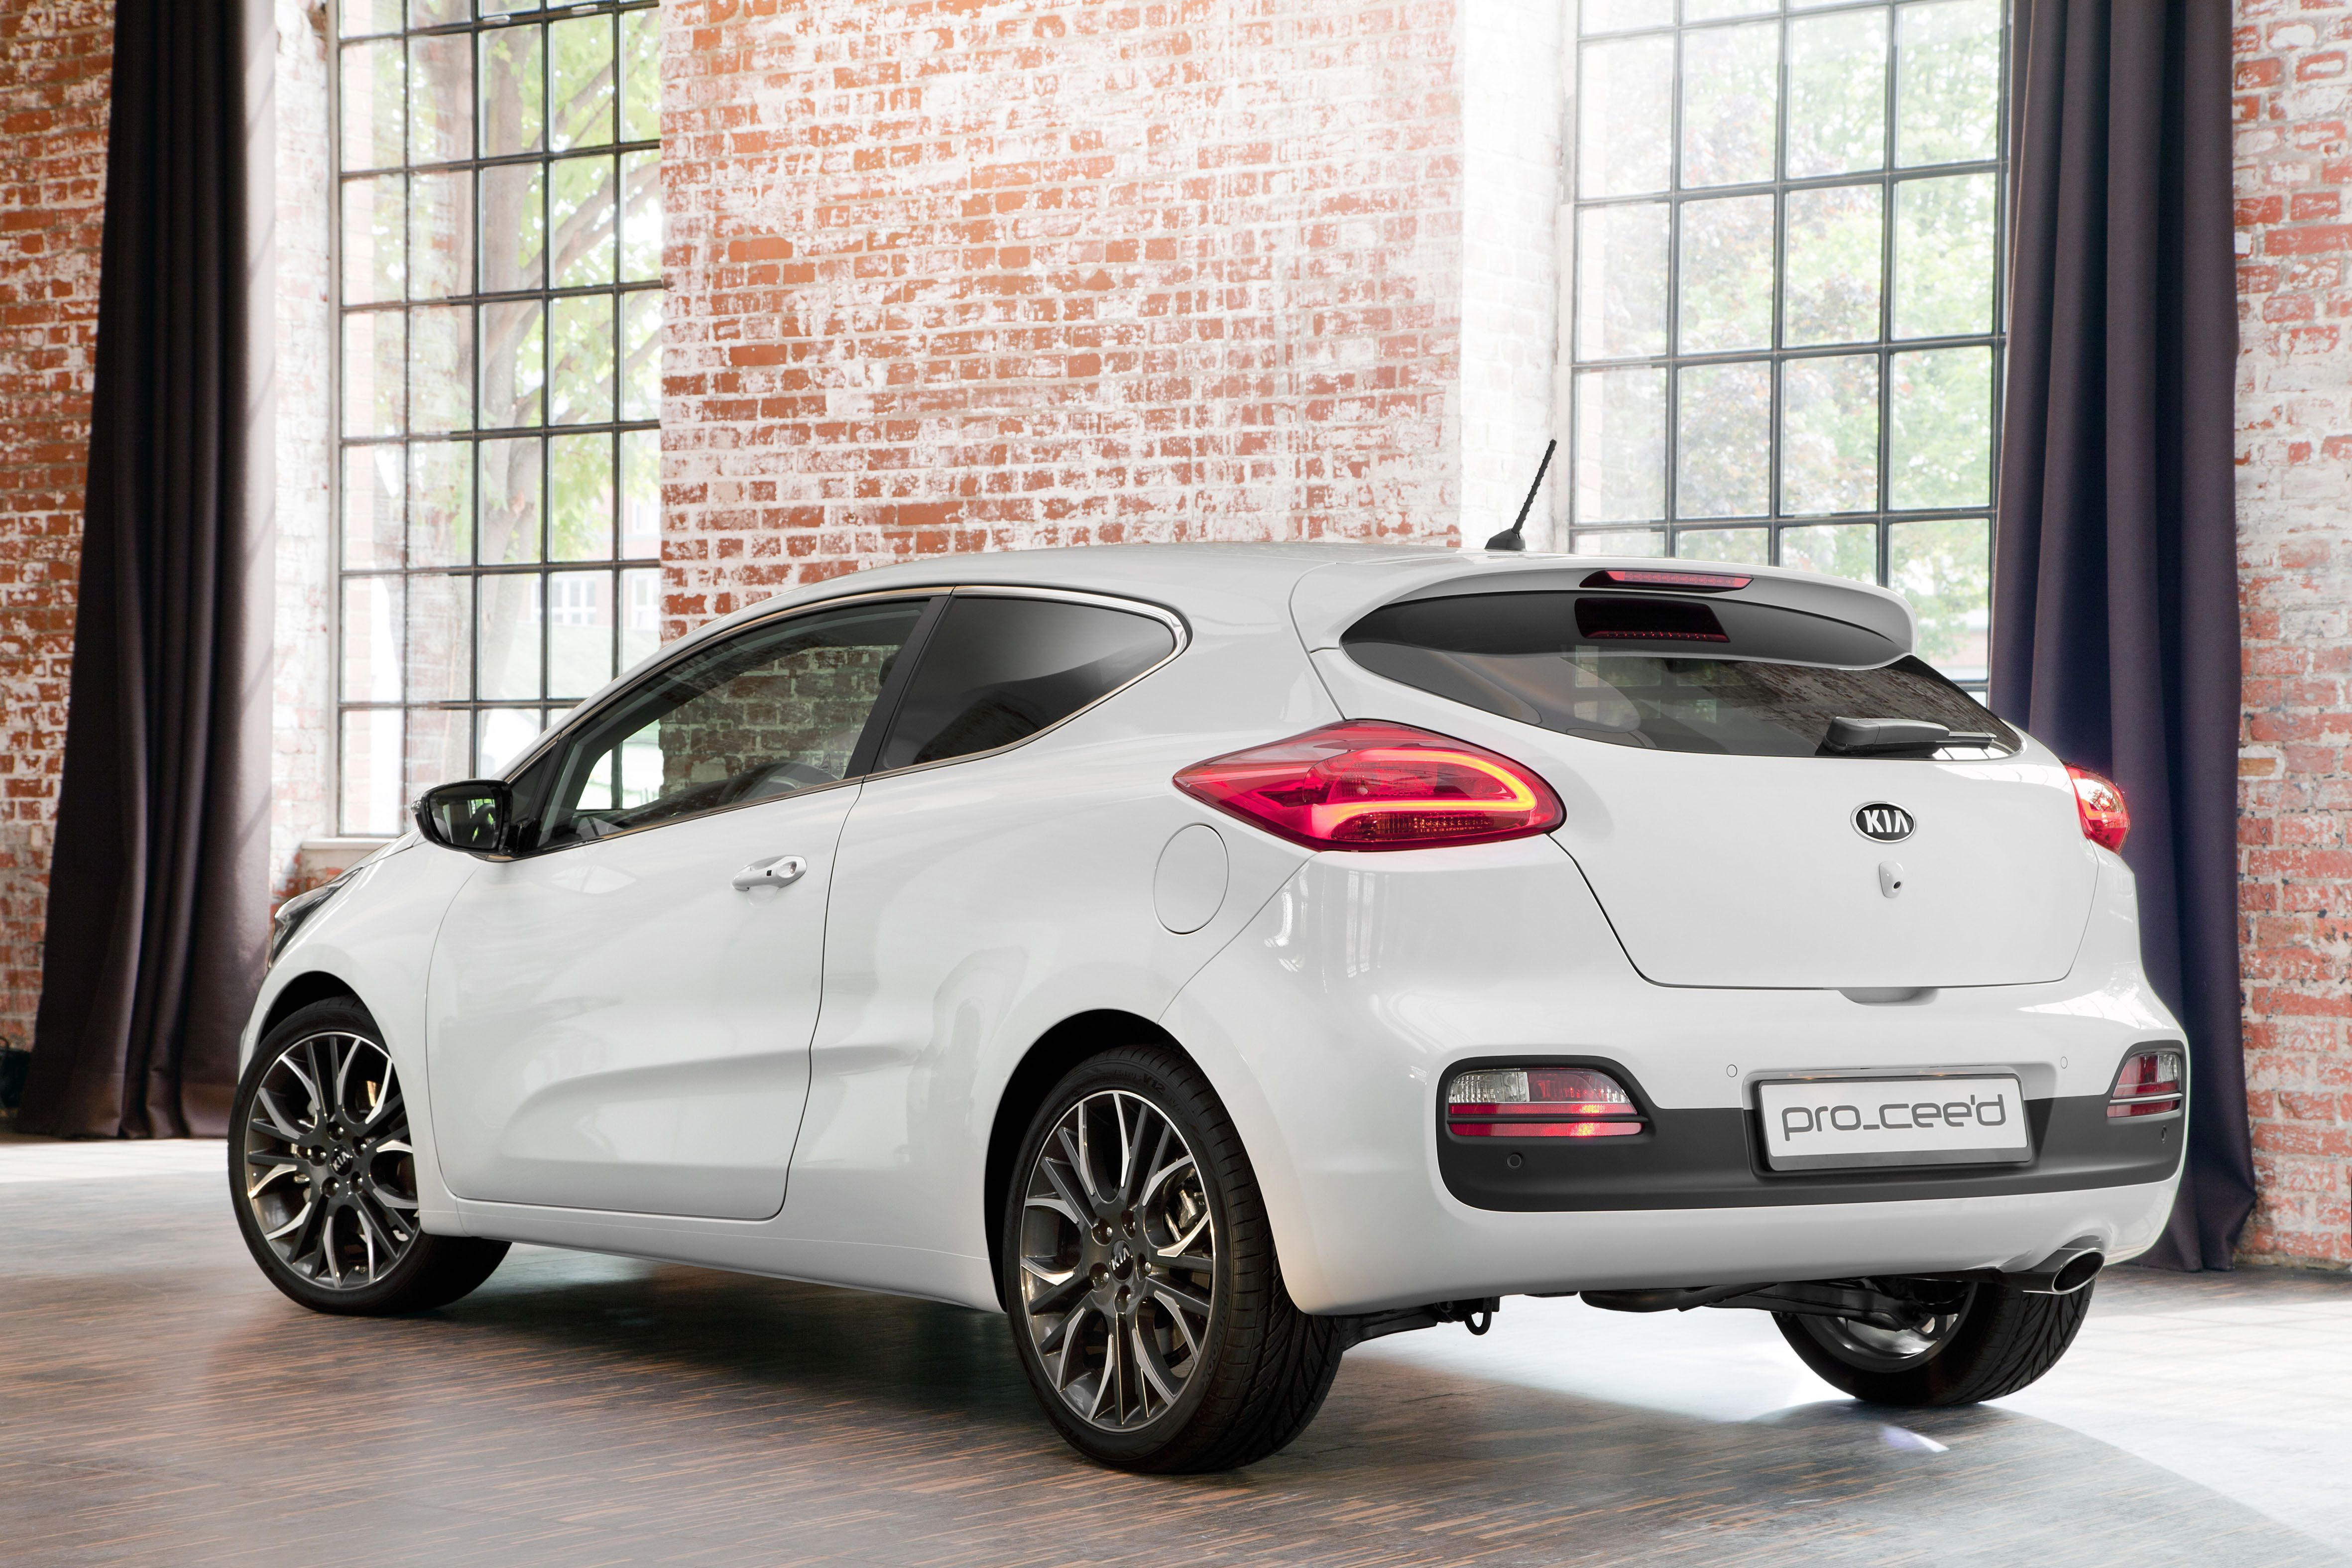 body trains the review japans cars family kia lawn parked hyundai enlarge s car chassis autos one tanks e niro drive and korean on ioniq japan three